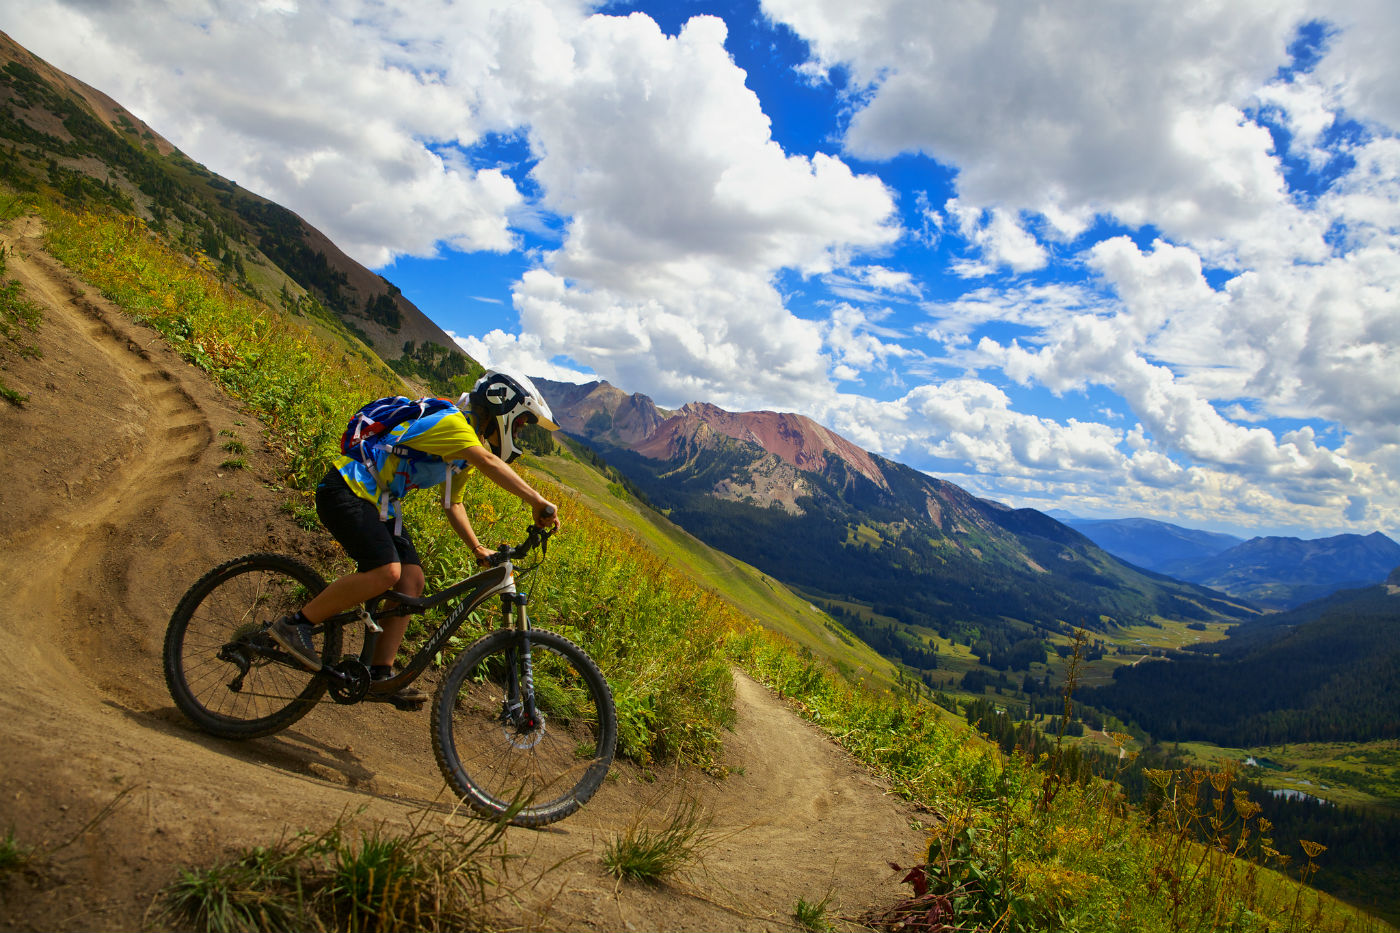 Downhill Biking in Crested Butte, Colorado